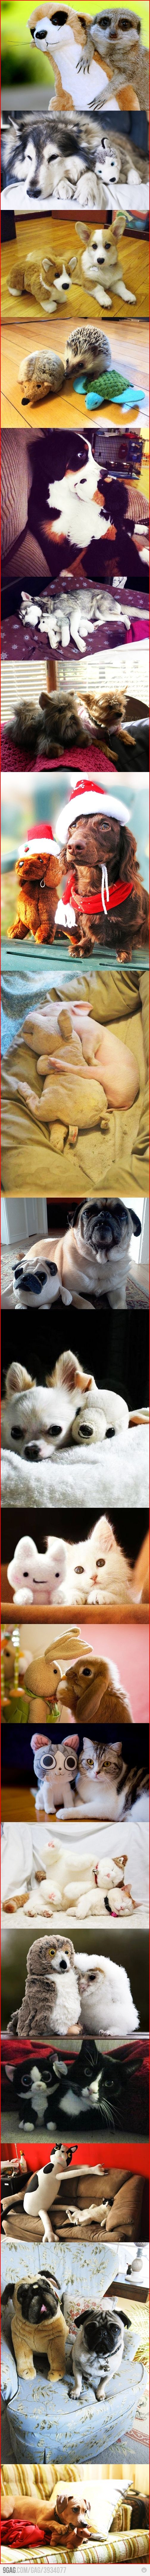 Cute animals and their cuddly counterparts. Does it get any cuter than this? No, it doesn't